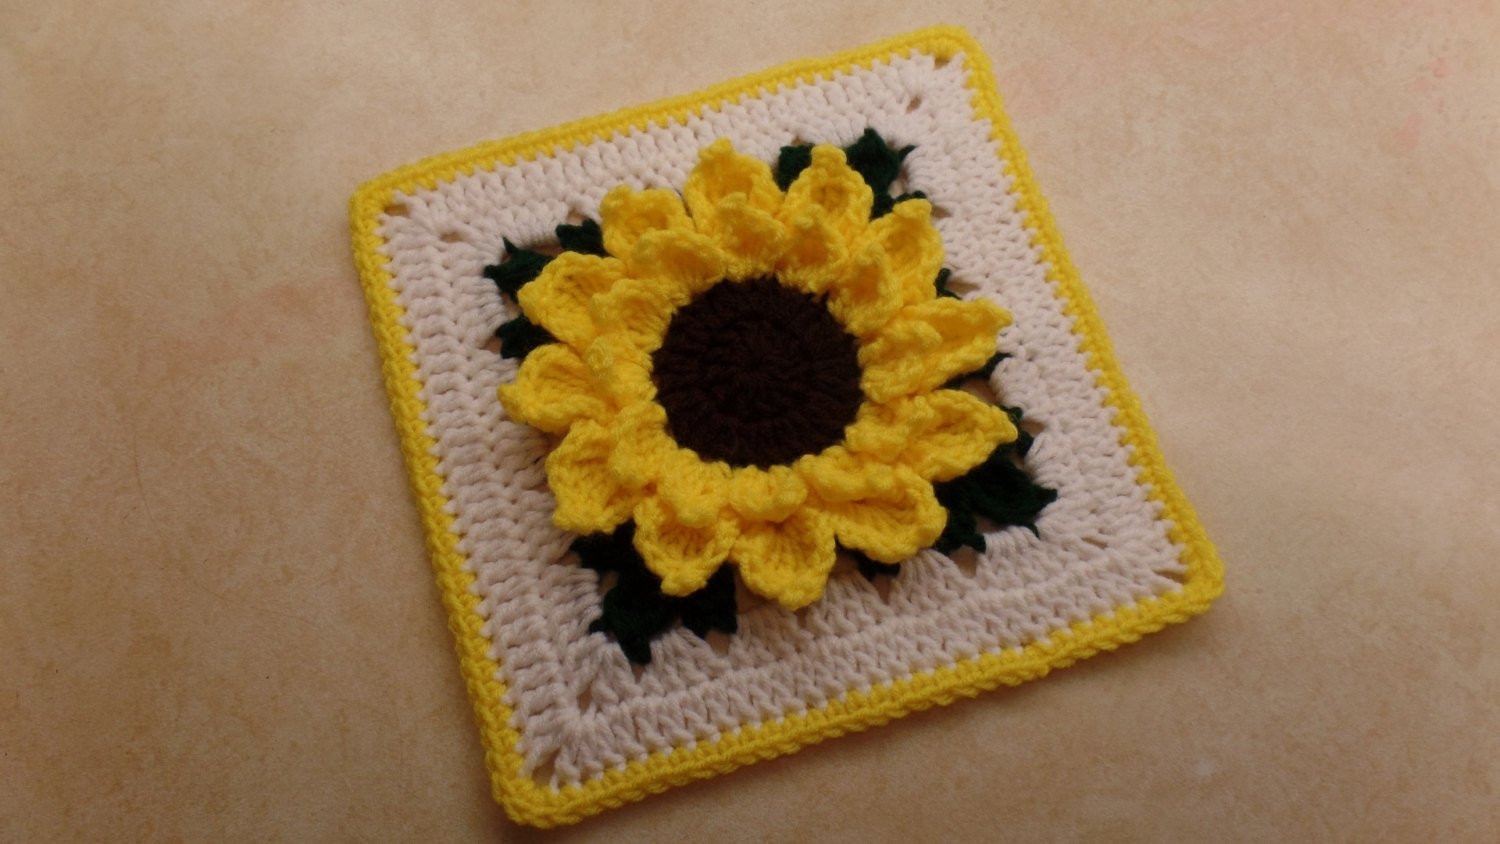 Fresh Crochet 10 Sunflower Granny Square Pattern Digital Sunflower Crochet Blanket Of Contemporary 48 Ideas Sunflower Crochet Blanket